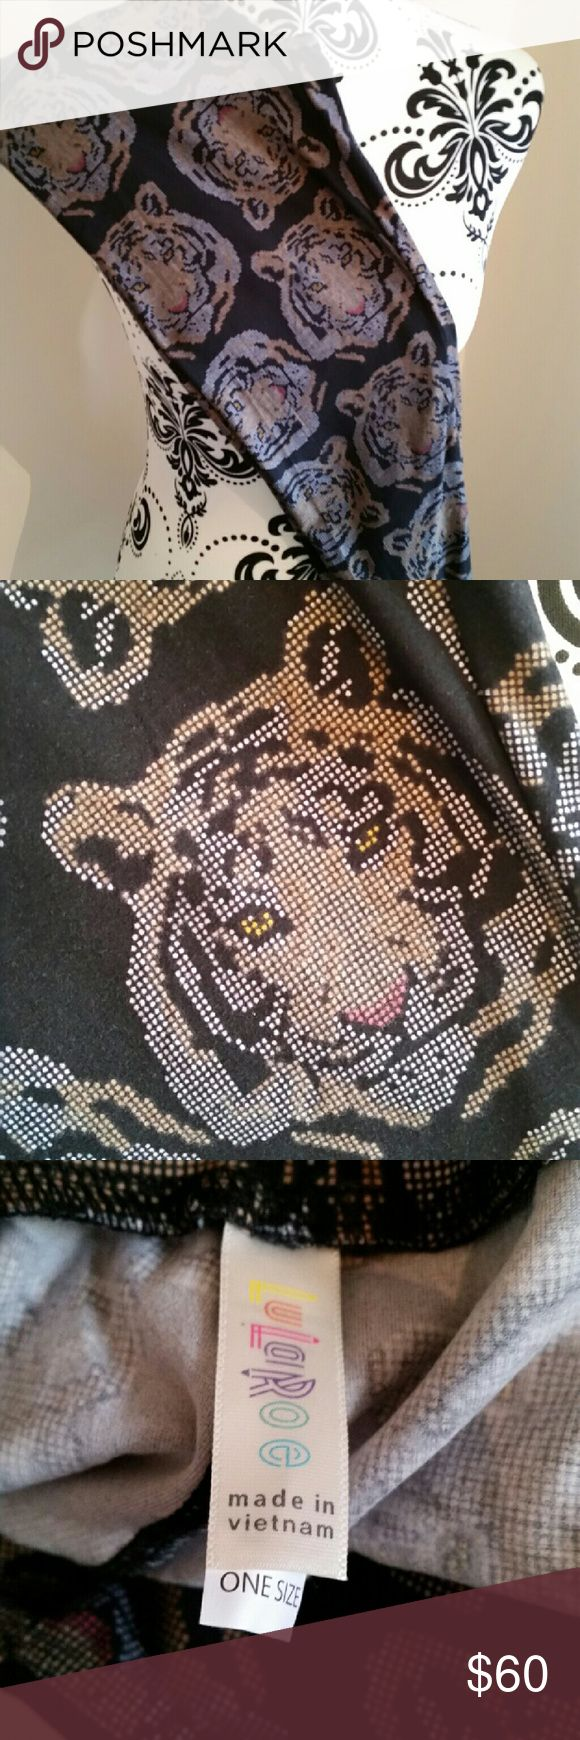 BNWT LOLAROE OS LION/TIGER LEGGINGS HTF Brand new new worn lularoe leggings OS ONE SIZE-  0-10 . BLACK BACKGROUND BEAUTIFUL BUTTERY SOFT. Awesome leggings. You will not be disappointed.  Check out my eBay reviews- purrdy3us Lularoe brand new with tag. Made in China.  I'm not a consultant I'm just someone that loves to hunt down all the HTF prints. It takes a lot of source, photograh, list and shipping these goodies. Supply and demand = price. LuLaRoe Pants Leggings